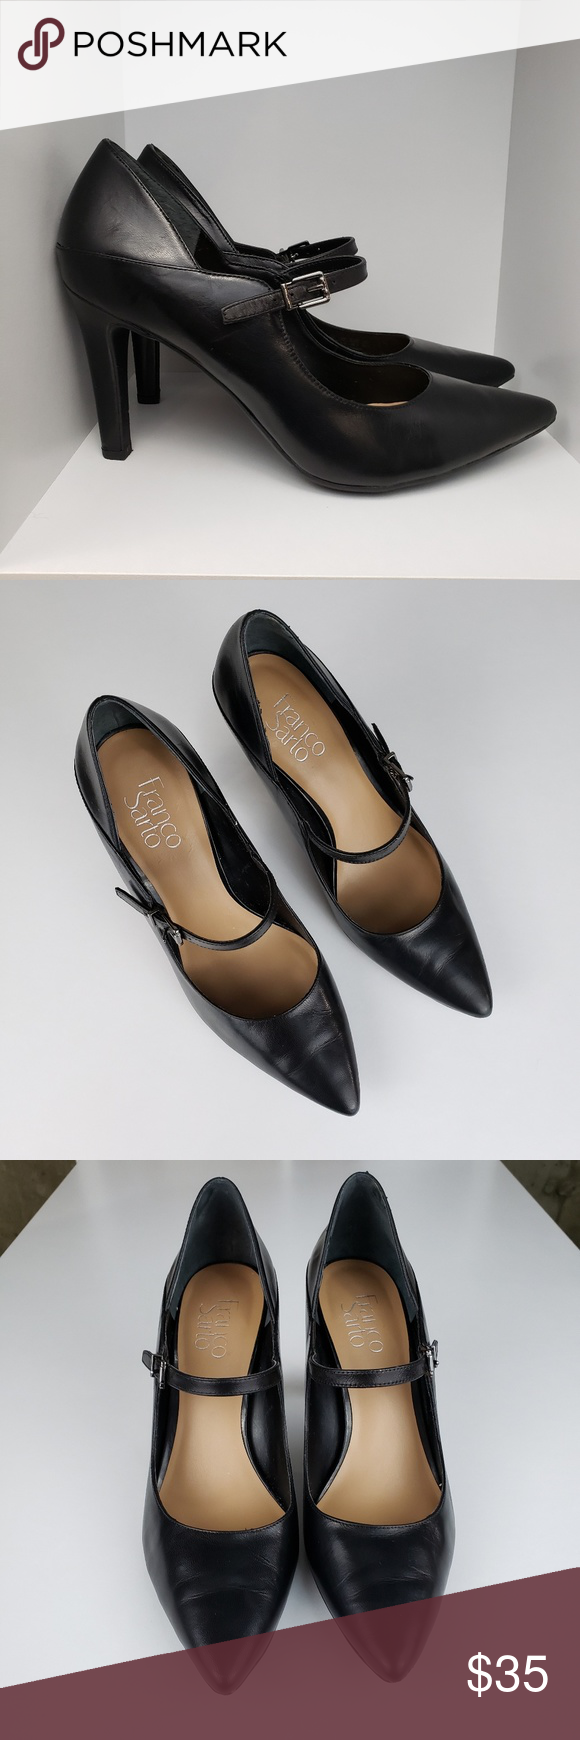 119ceb907e6 Franco Sarto Anthem Leather High Heel Size 8.5 This classic pump is perfect  for work or